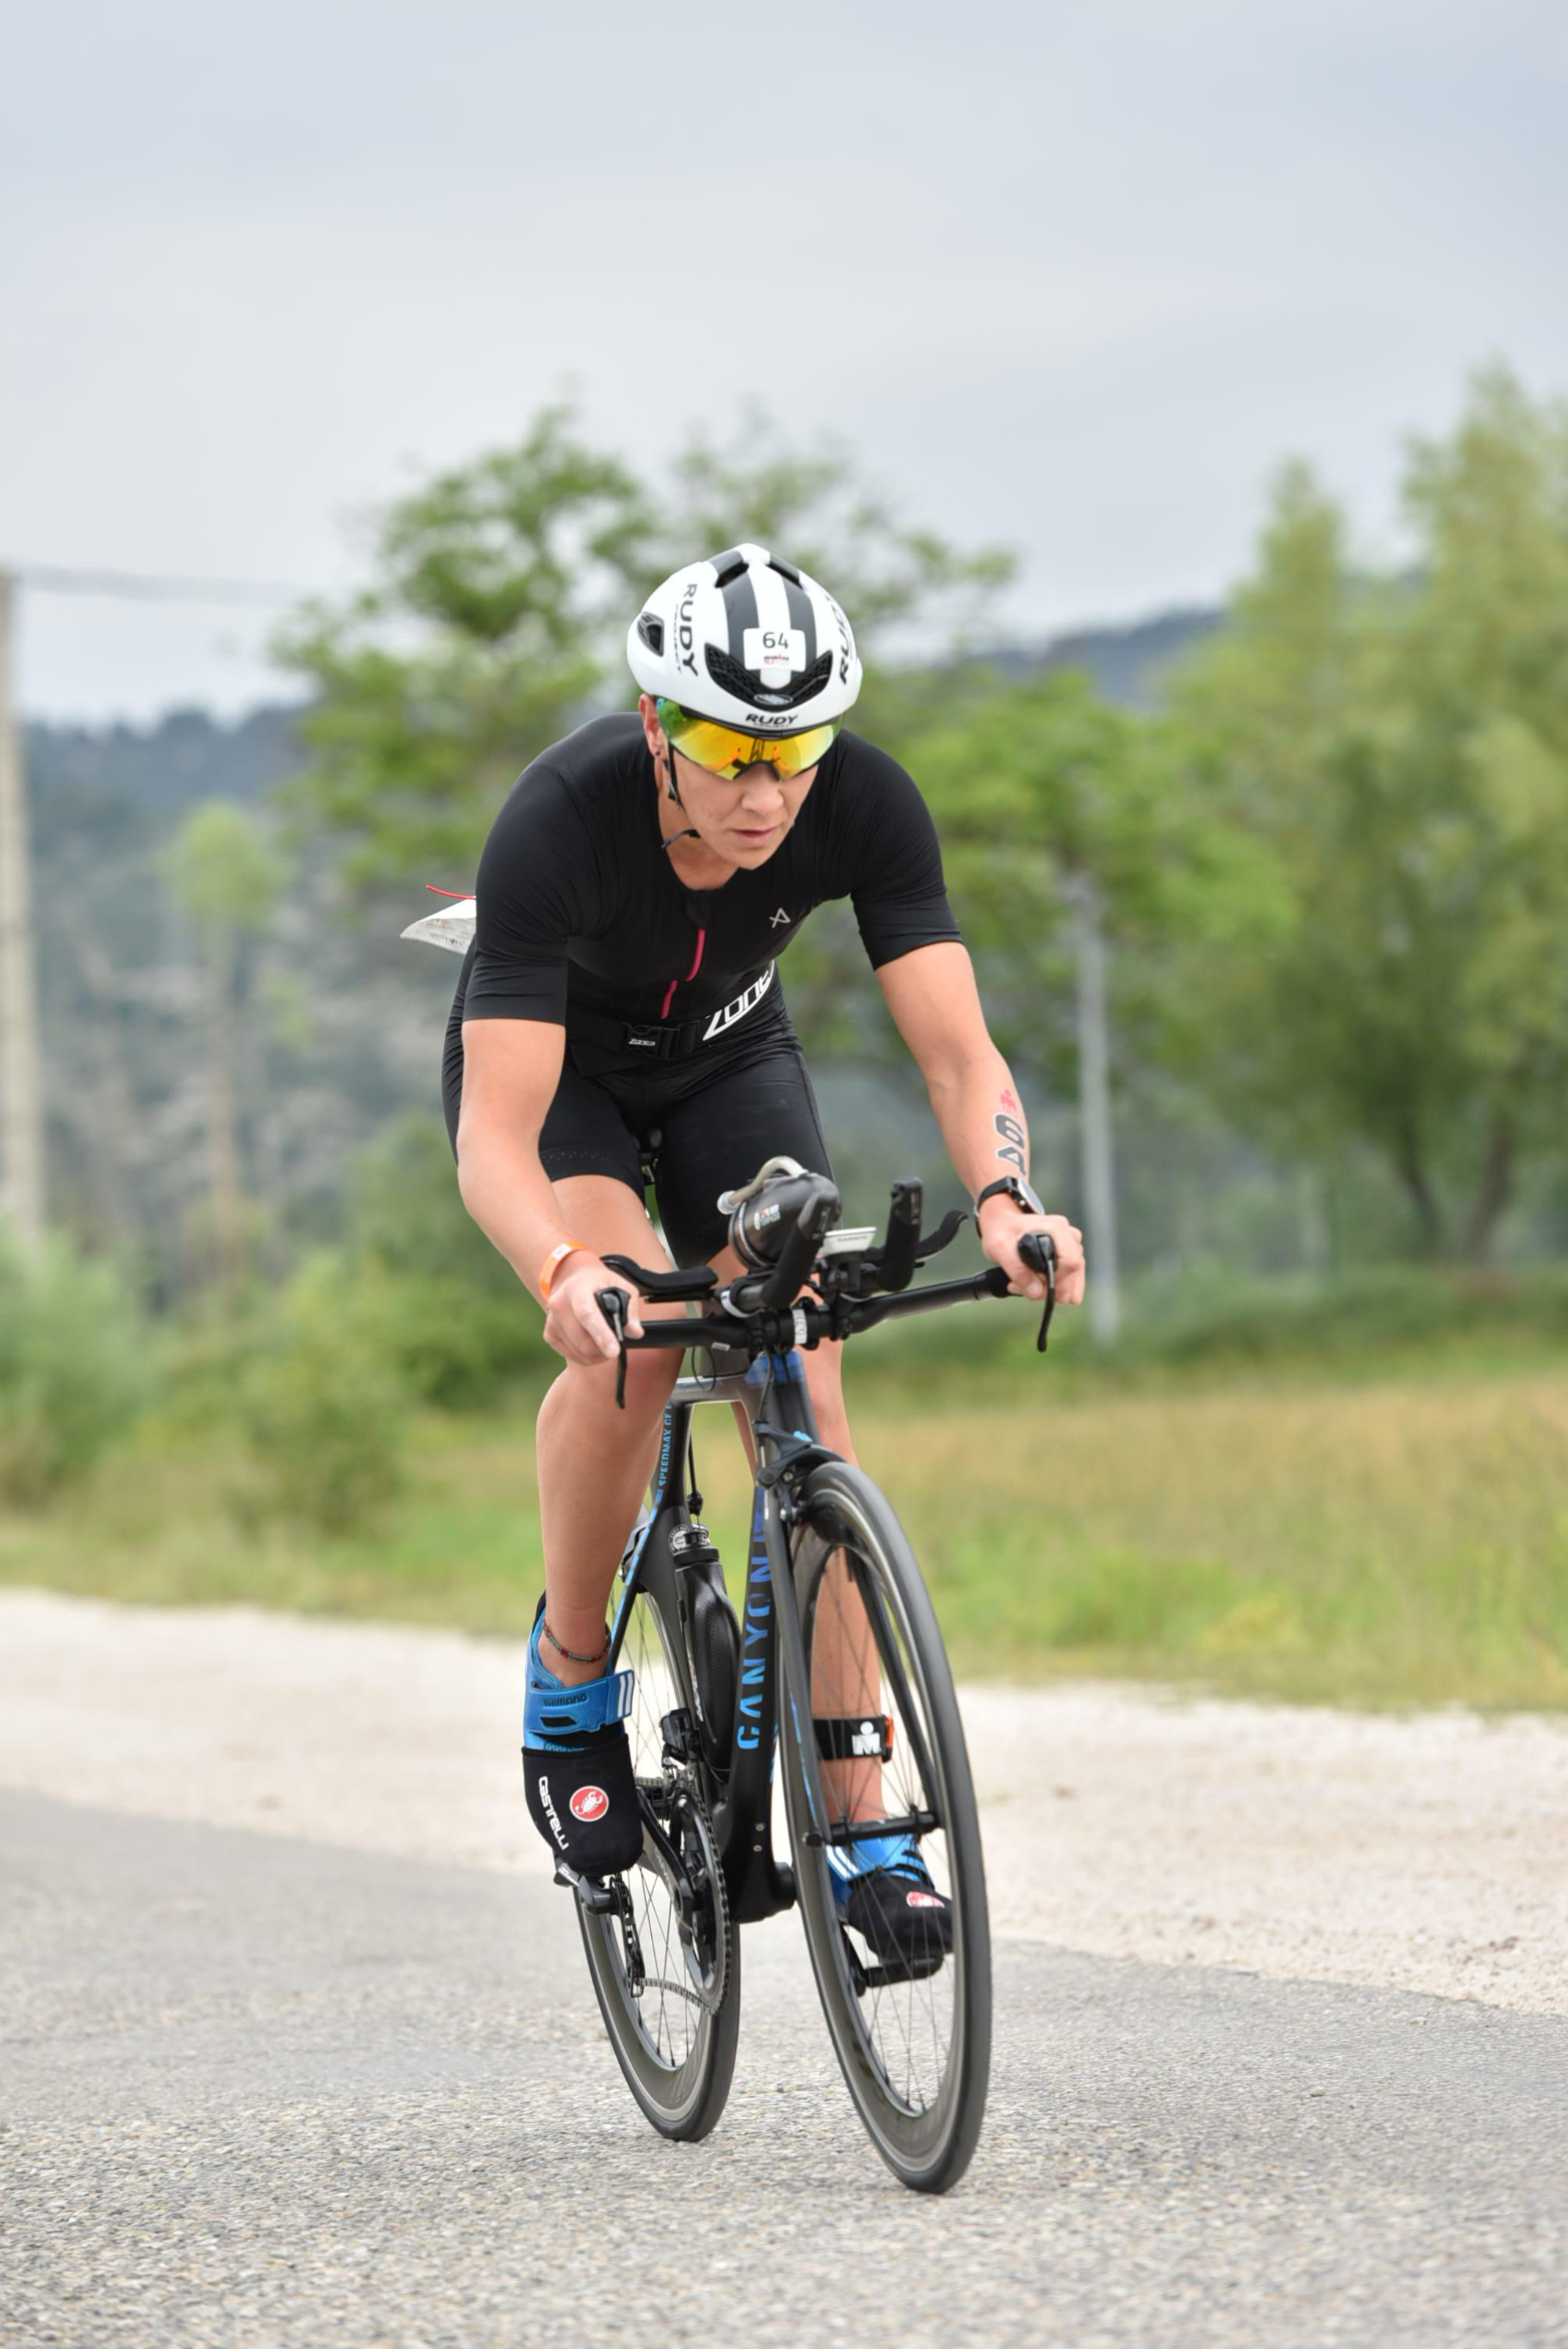 70.3 Pays d'Aix - 13th May 20185th Pro Woman